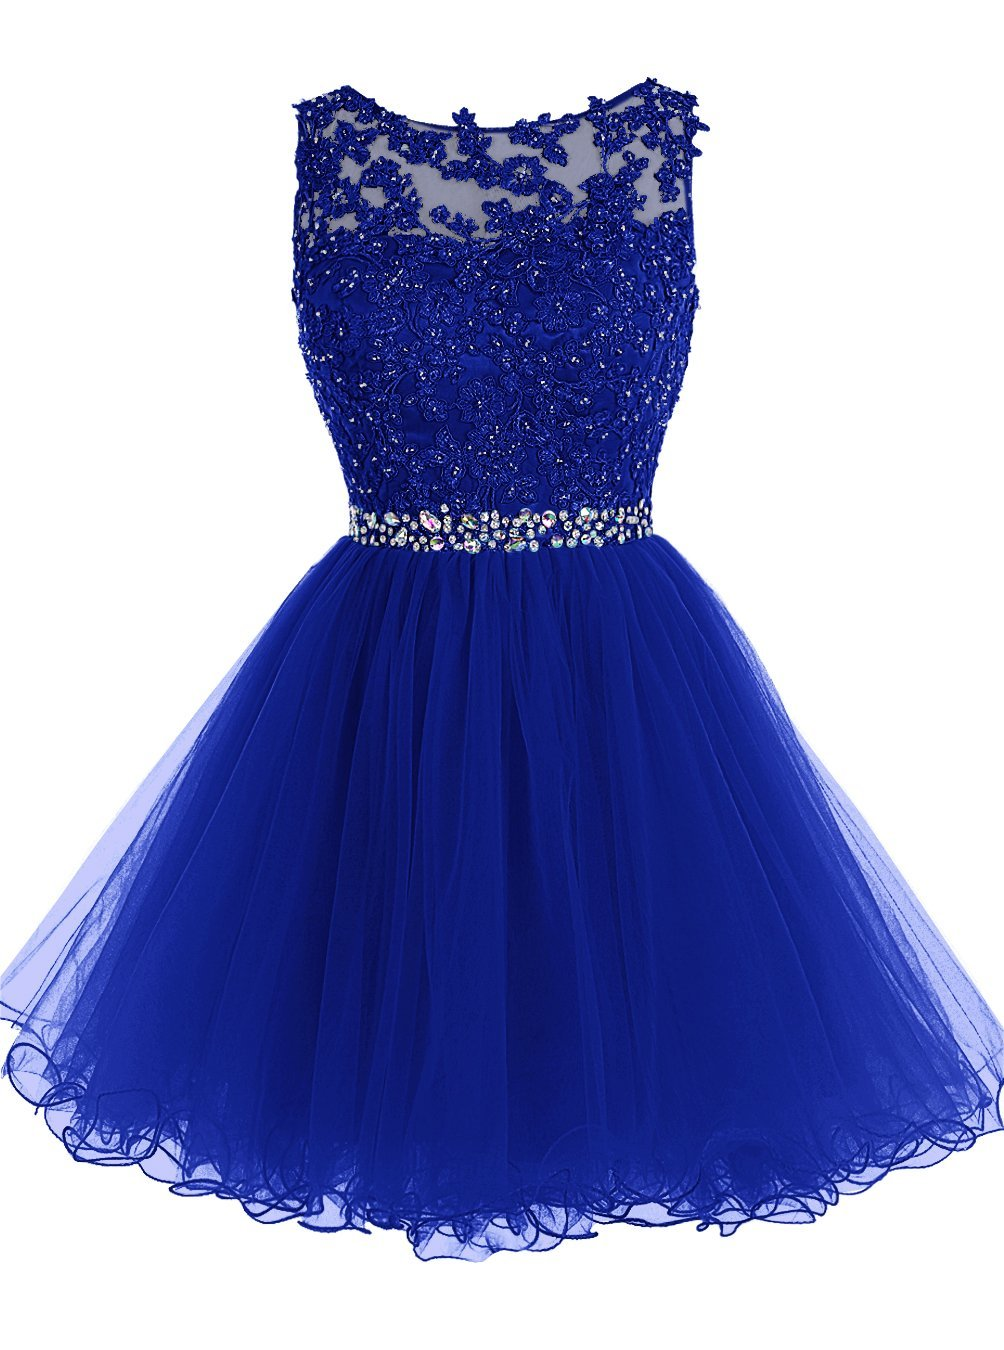 034d21e486c0 Vintage Crystal Tulle Short Prom Dresses Lace Appliqued Sheer Sexy Girls  Mini Homecoing Dress Junior Off Shoullder Party Dress Royal Blue